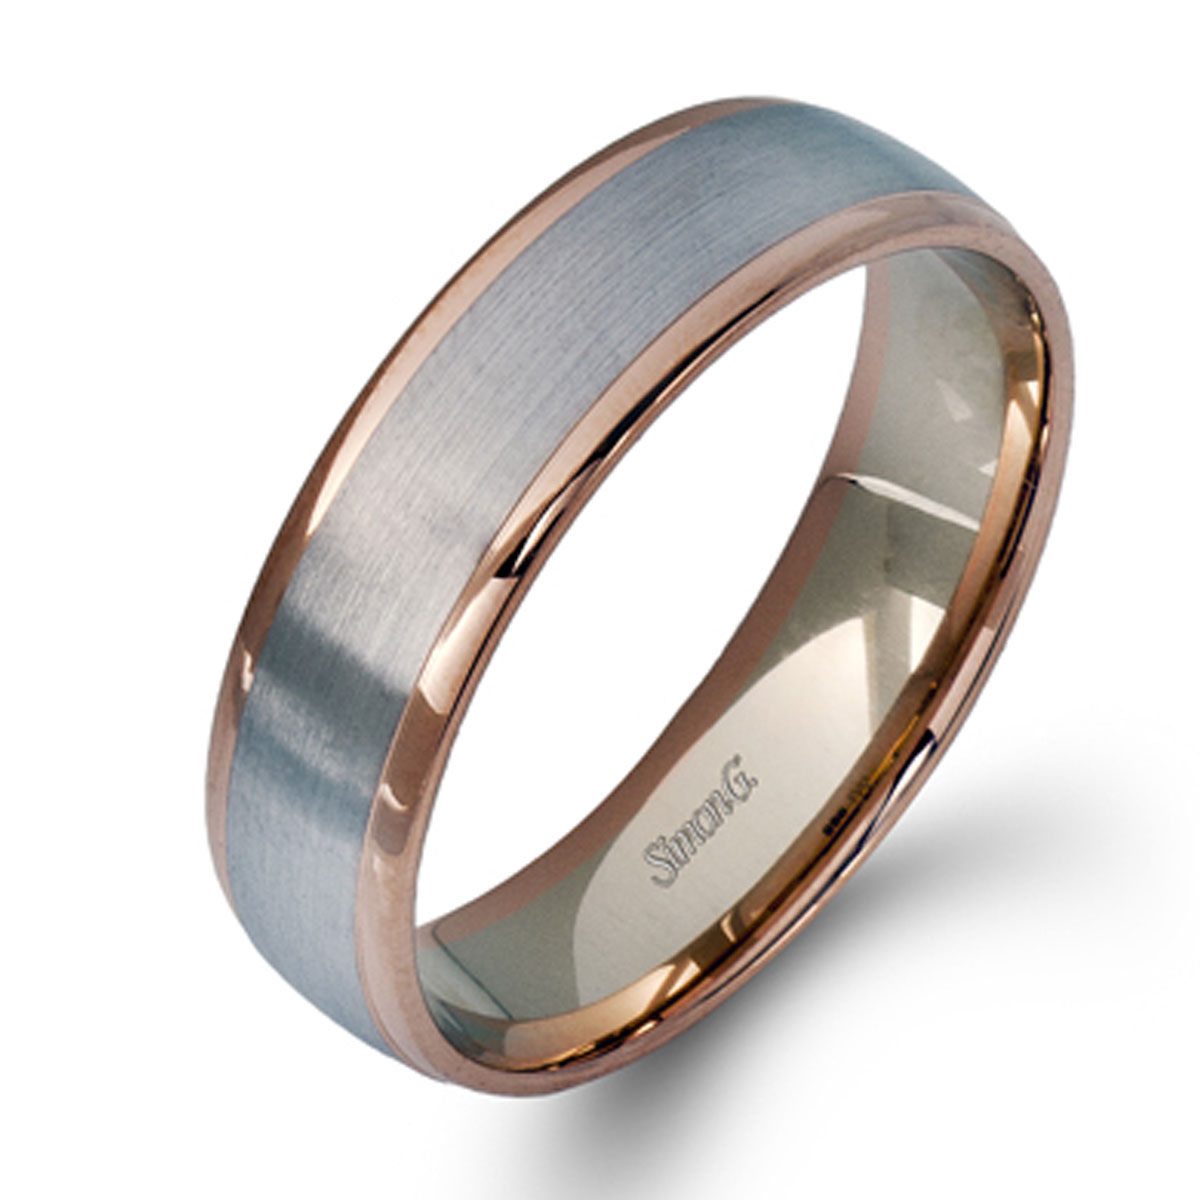 Wedding Band For Men.Simon G Engagement Rings Contemporary Modern Classic Design